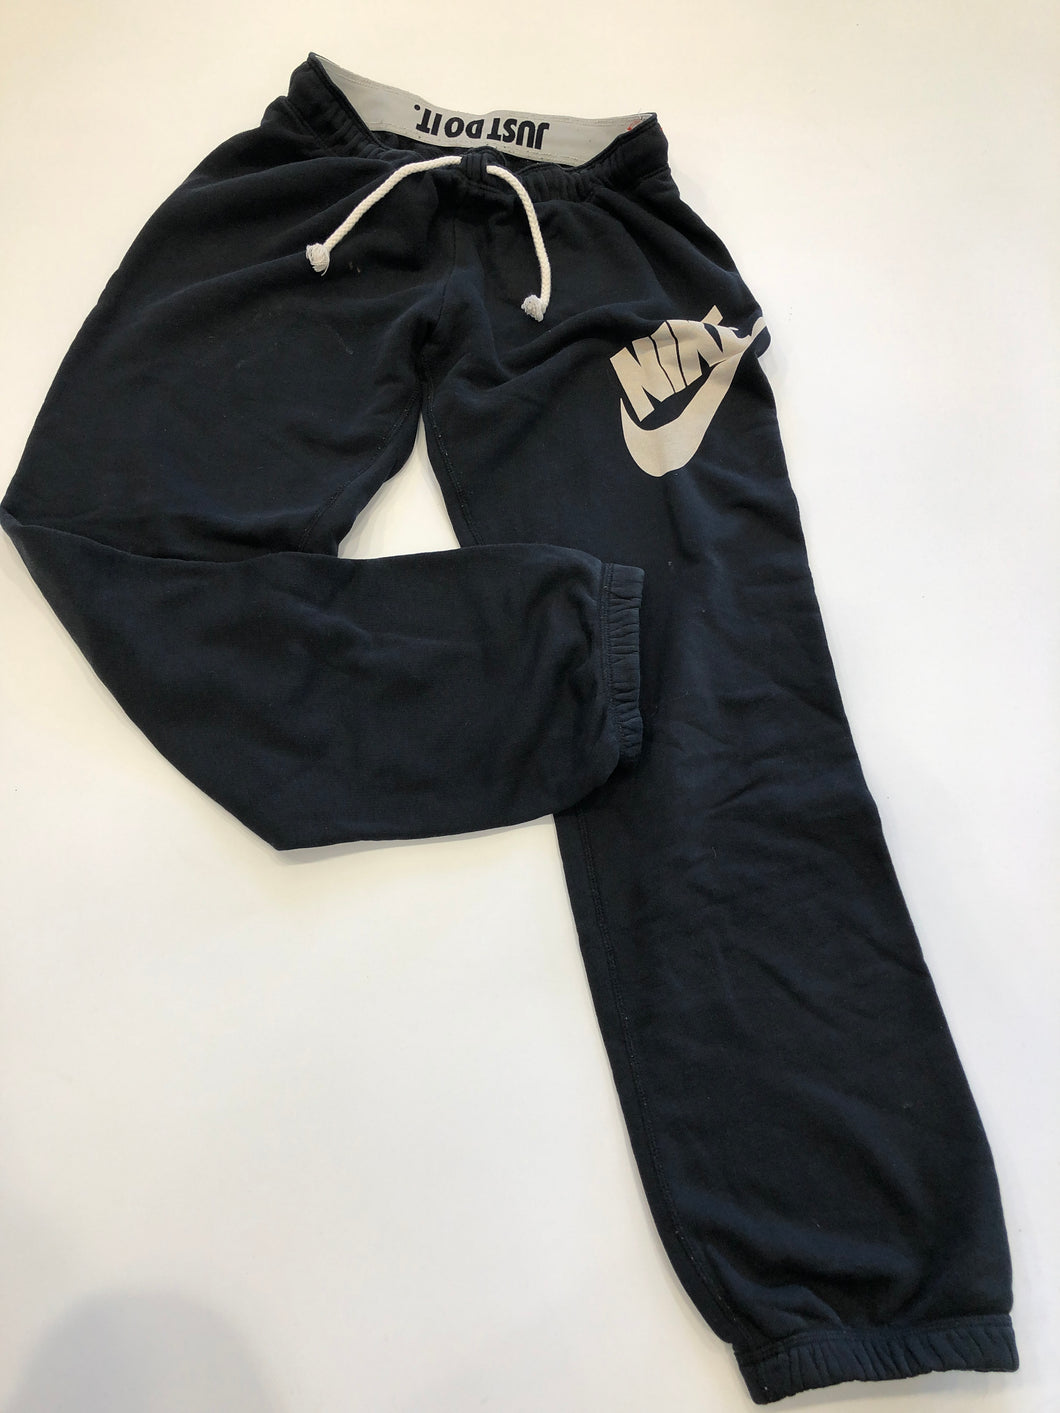 Nike BOTTOMS / CASUAL - ACTIVEWEAR 6-28 as is -image.jpg